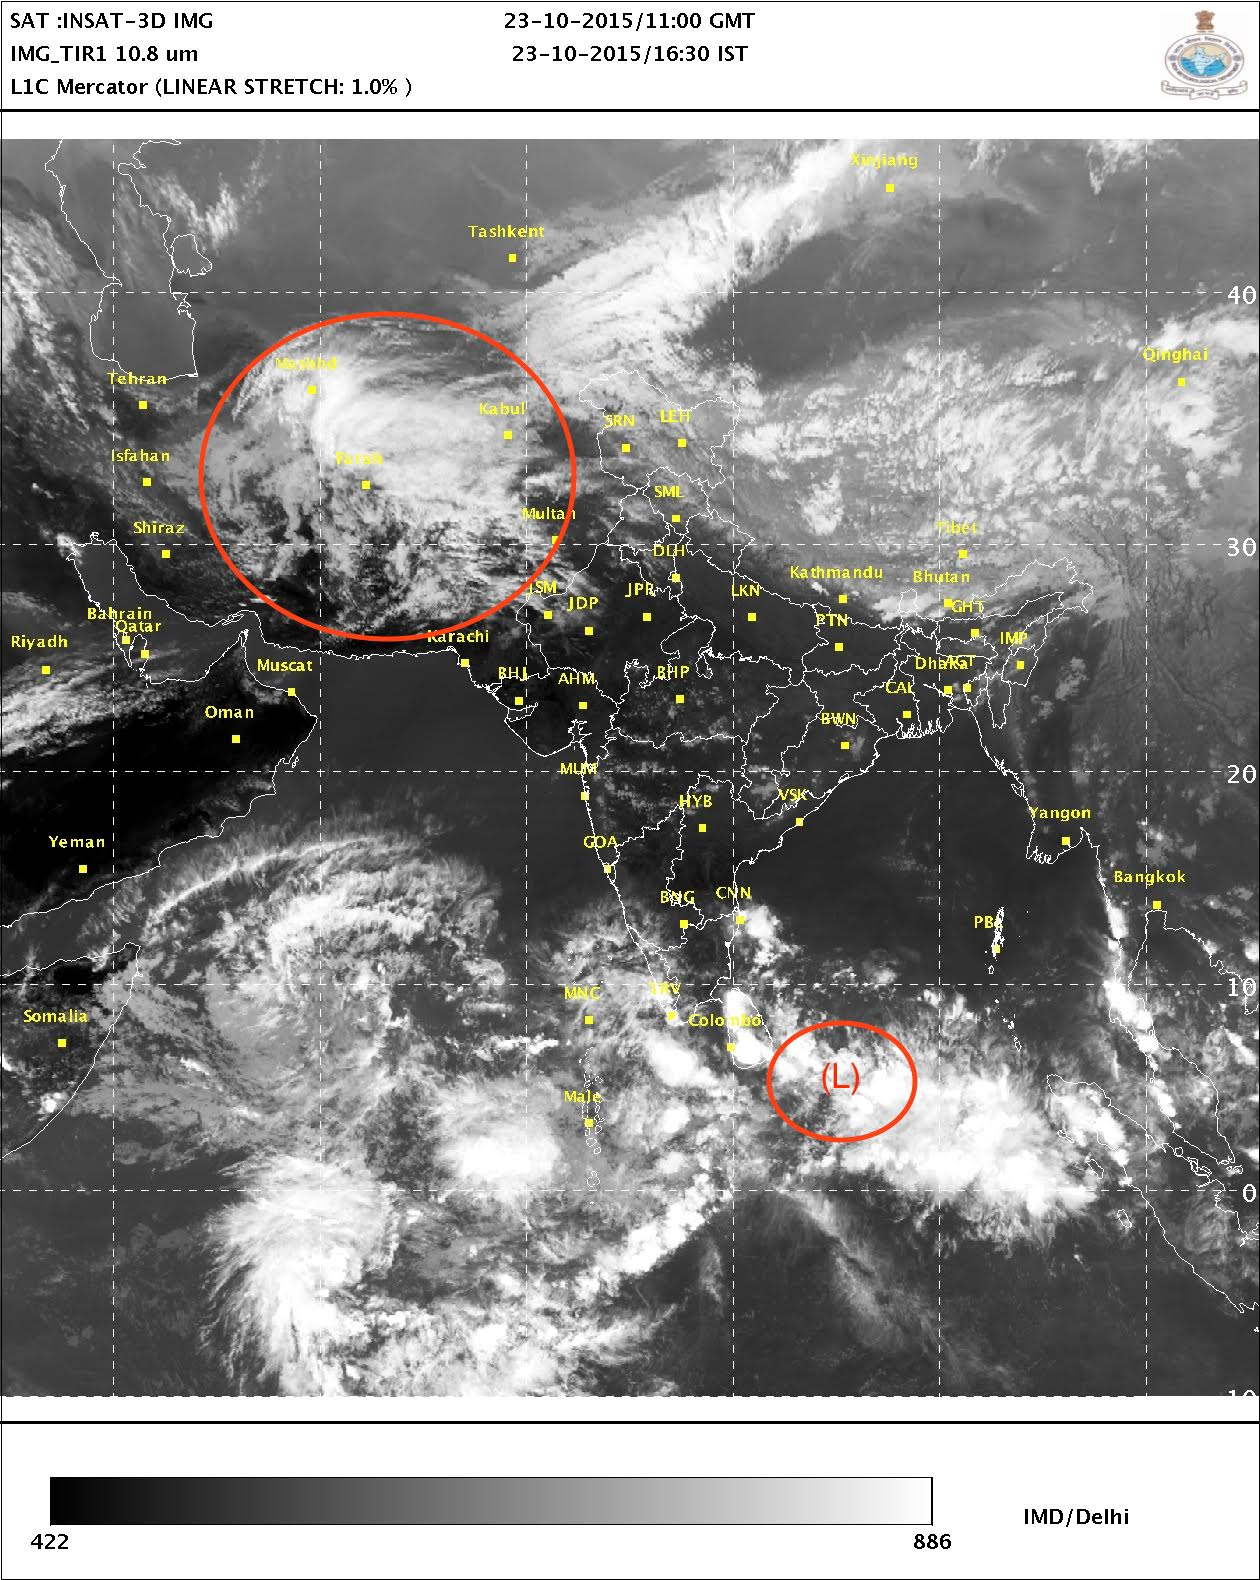 The satellite image taken on  October 23 shows the position of the western disturbance (circled in red) and the low pressure system (denoted by L) in the Bay of Bengal